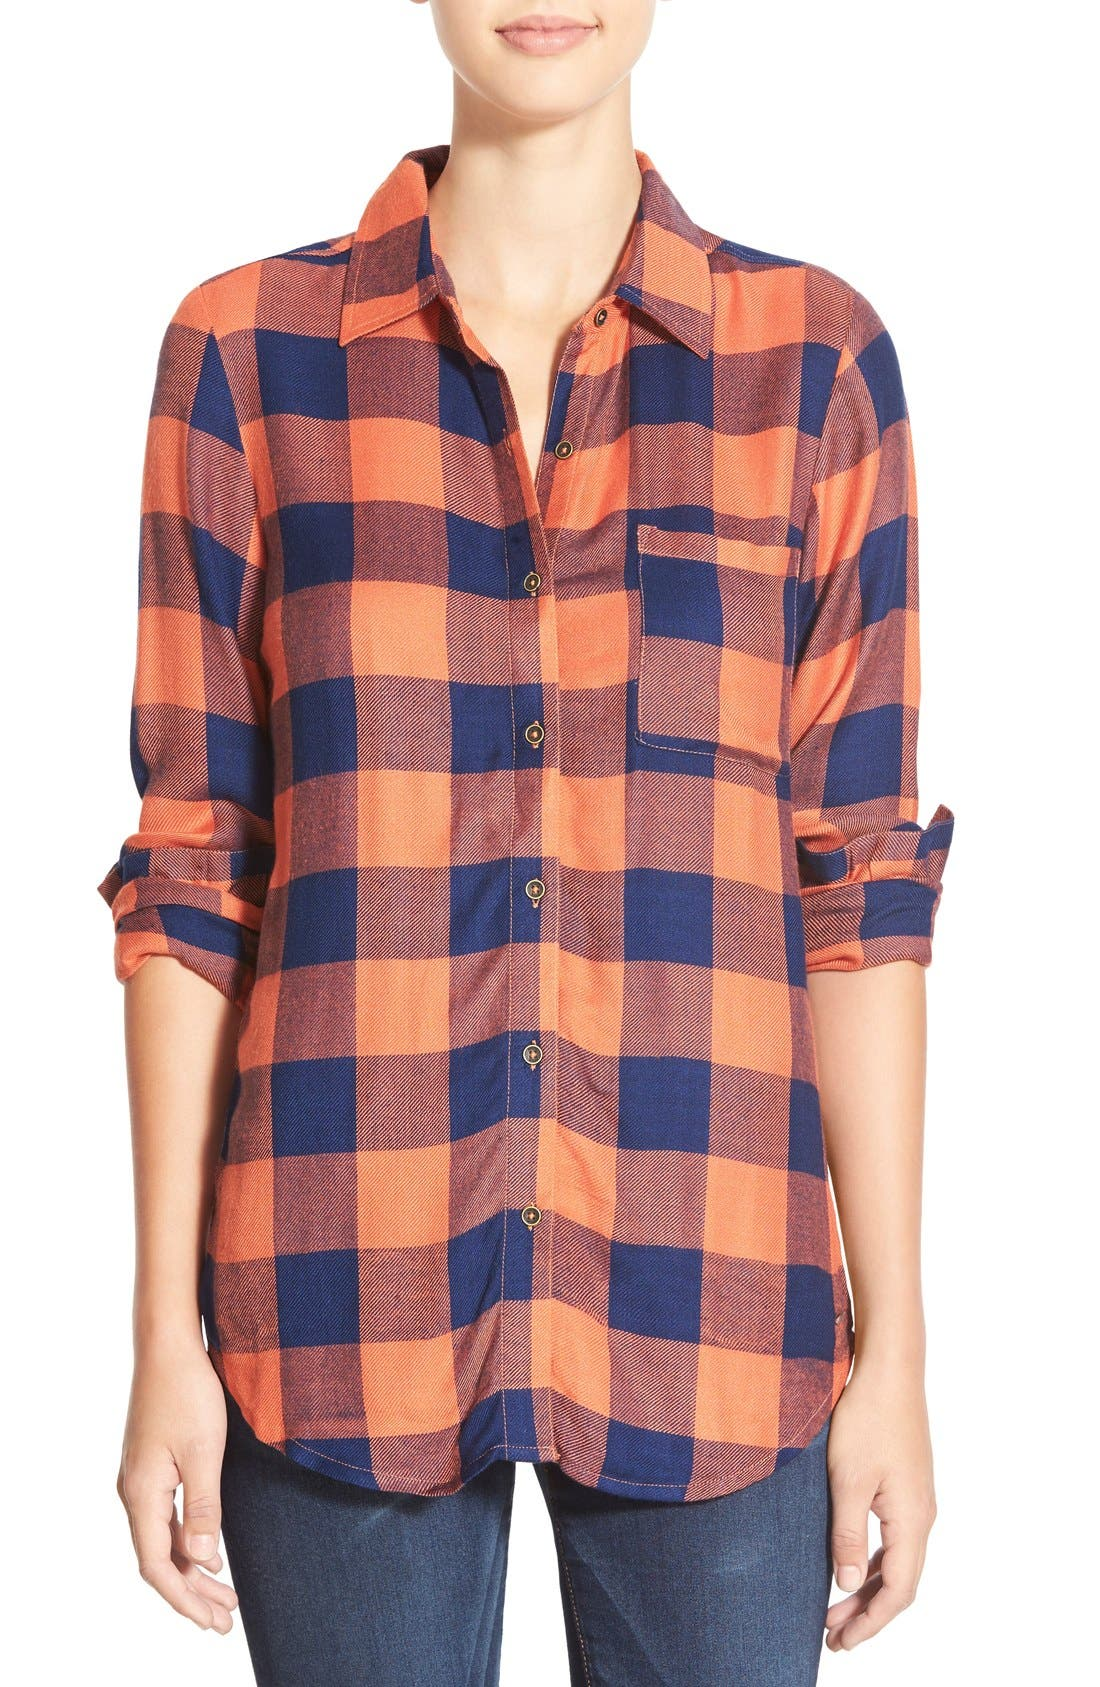 Alternate Image 1 Selected - Rip Curl 'Dweller' Lace Back Flannel Shirt